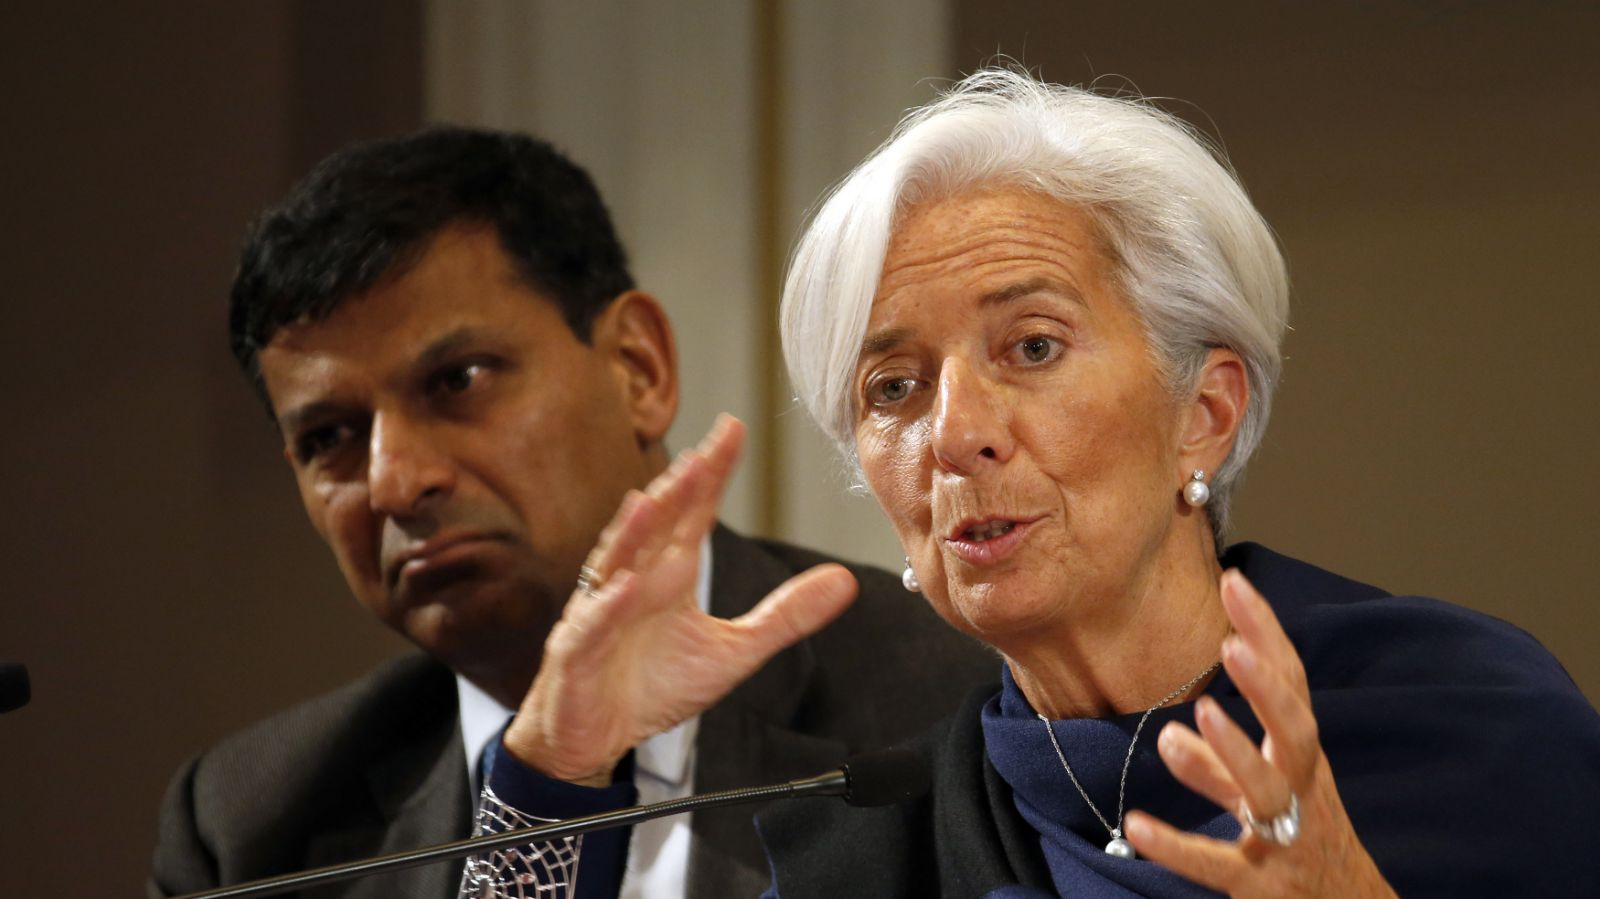 IMF President Christine Lagarde attends a conference of central bankers hosted by the Bank of France in Paris November 7, 2014. Listening at Left is Reserve Bank of India (RBI) Governor Raghuram Rajan.